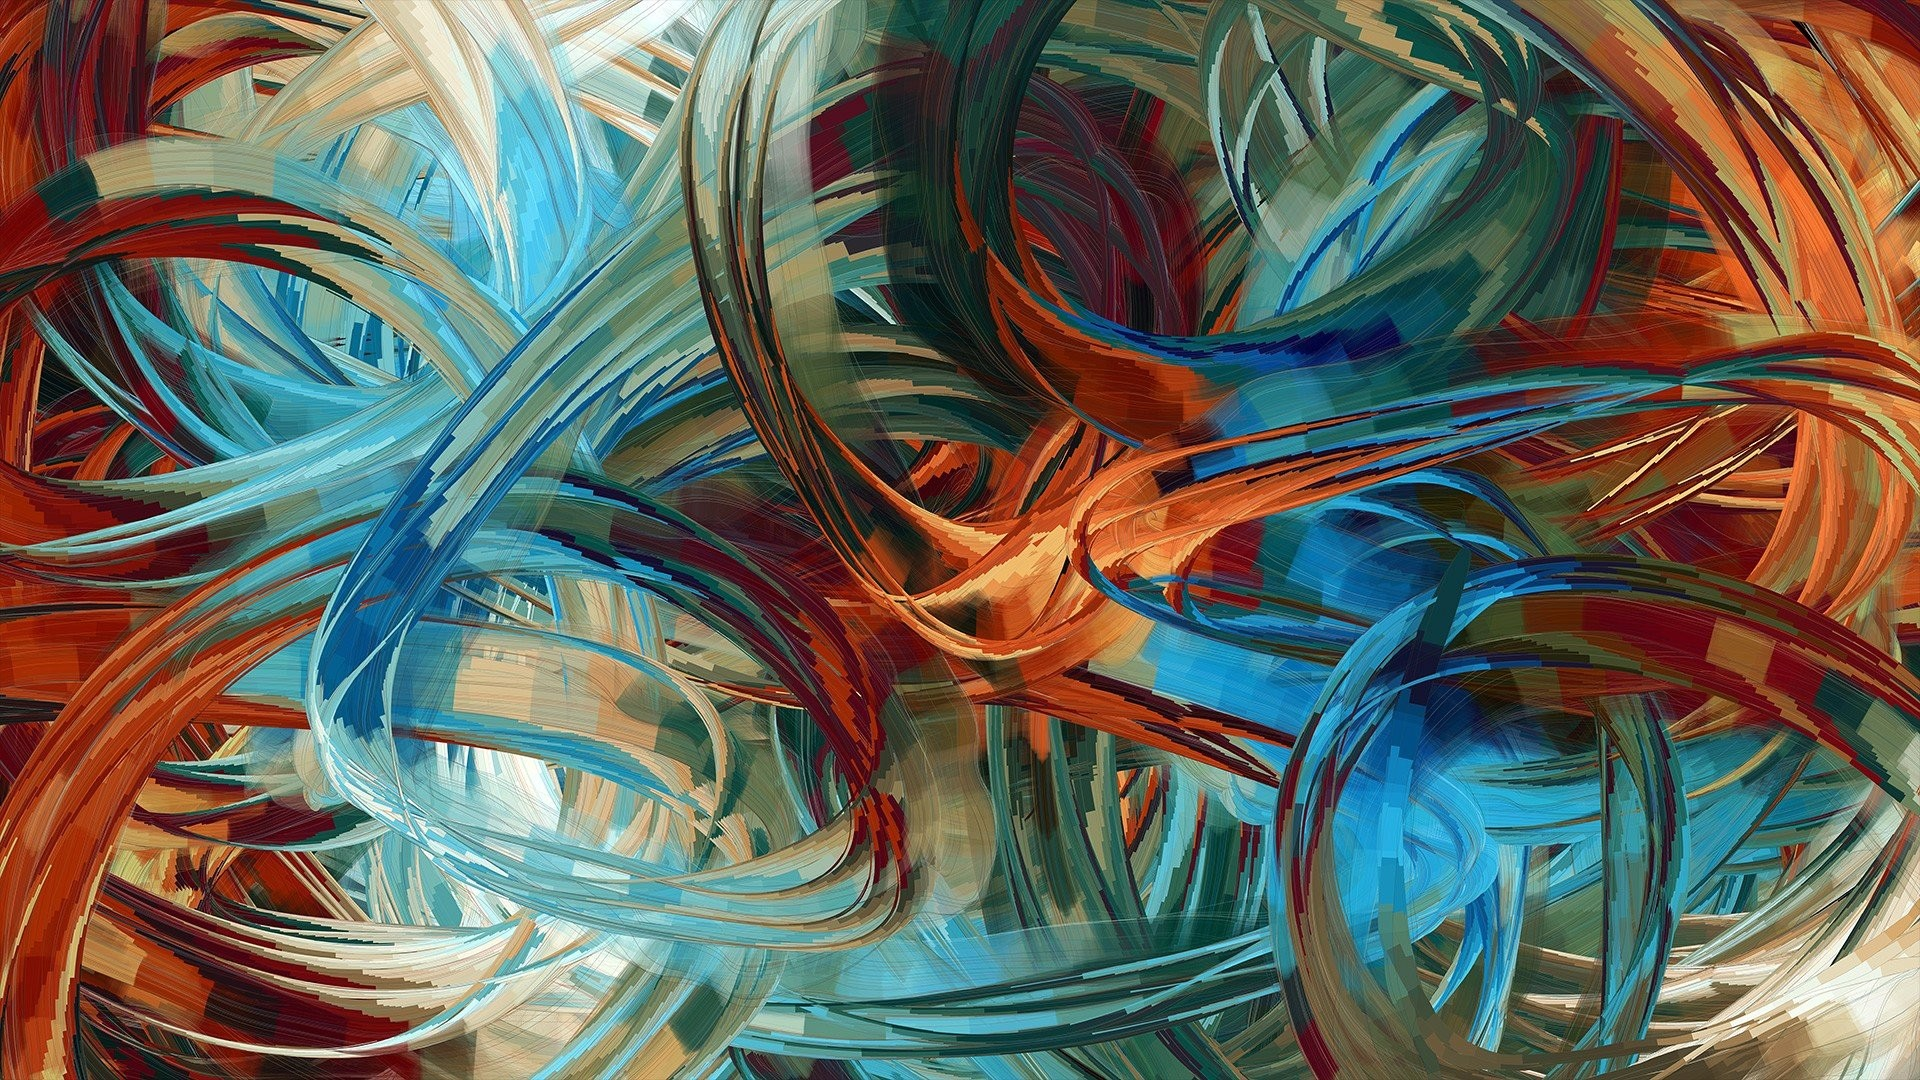 Abstract Painting Wallpaper: Famous Art Desktop Wallpaper (62+ Images